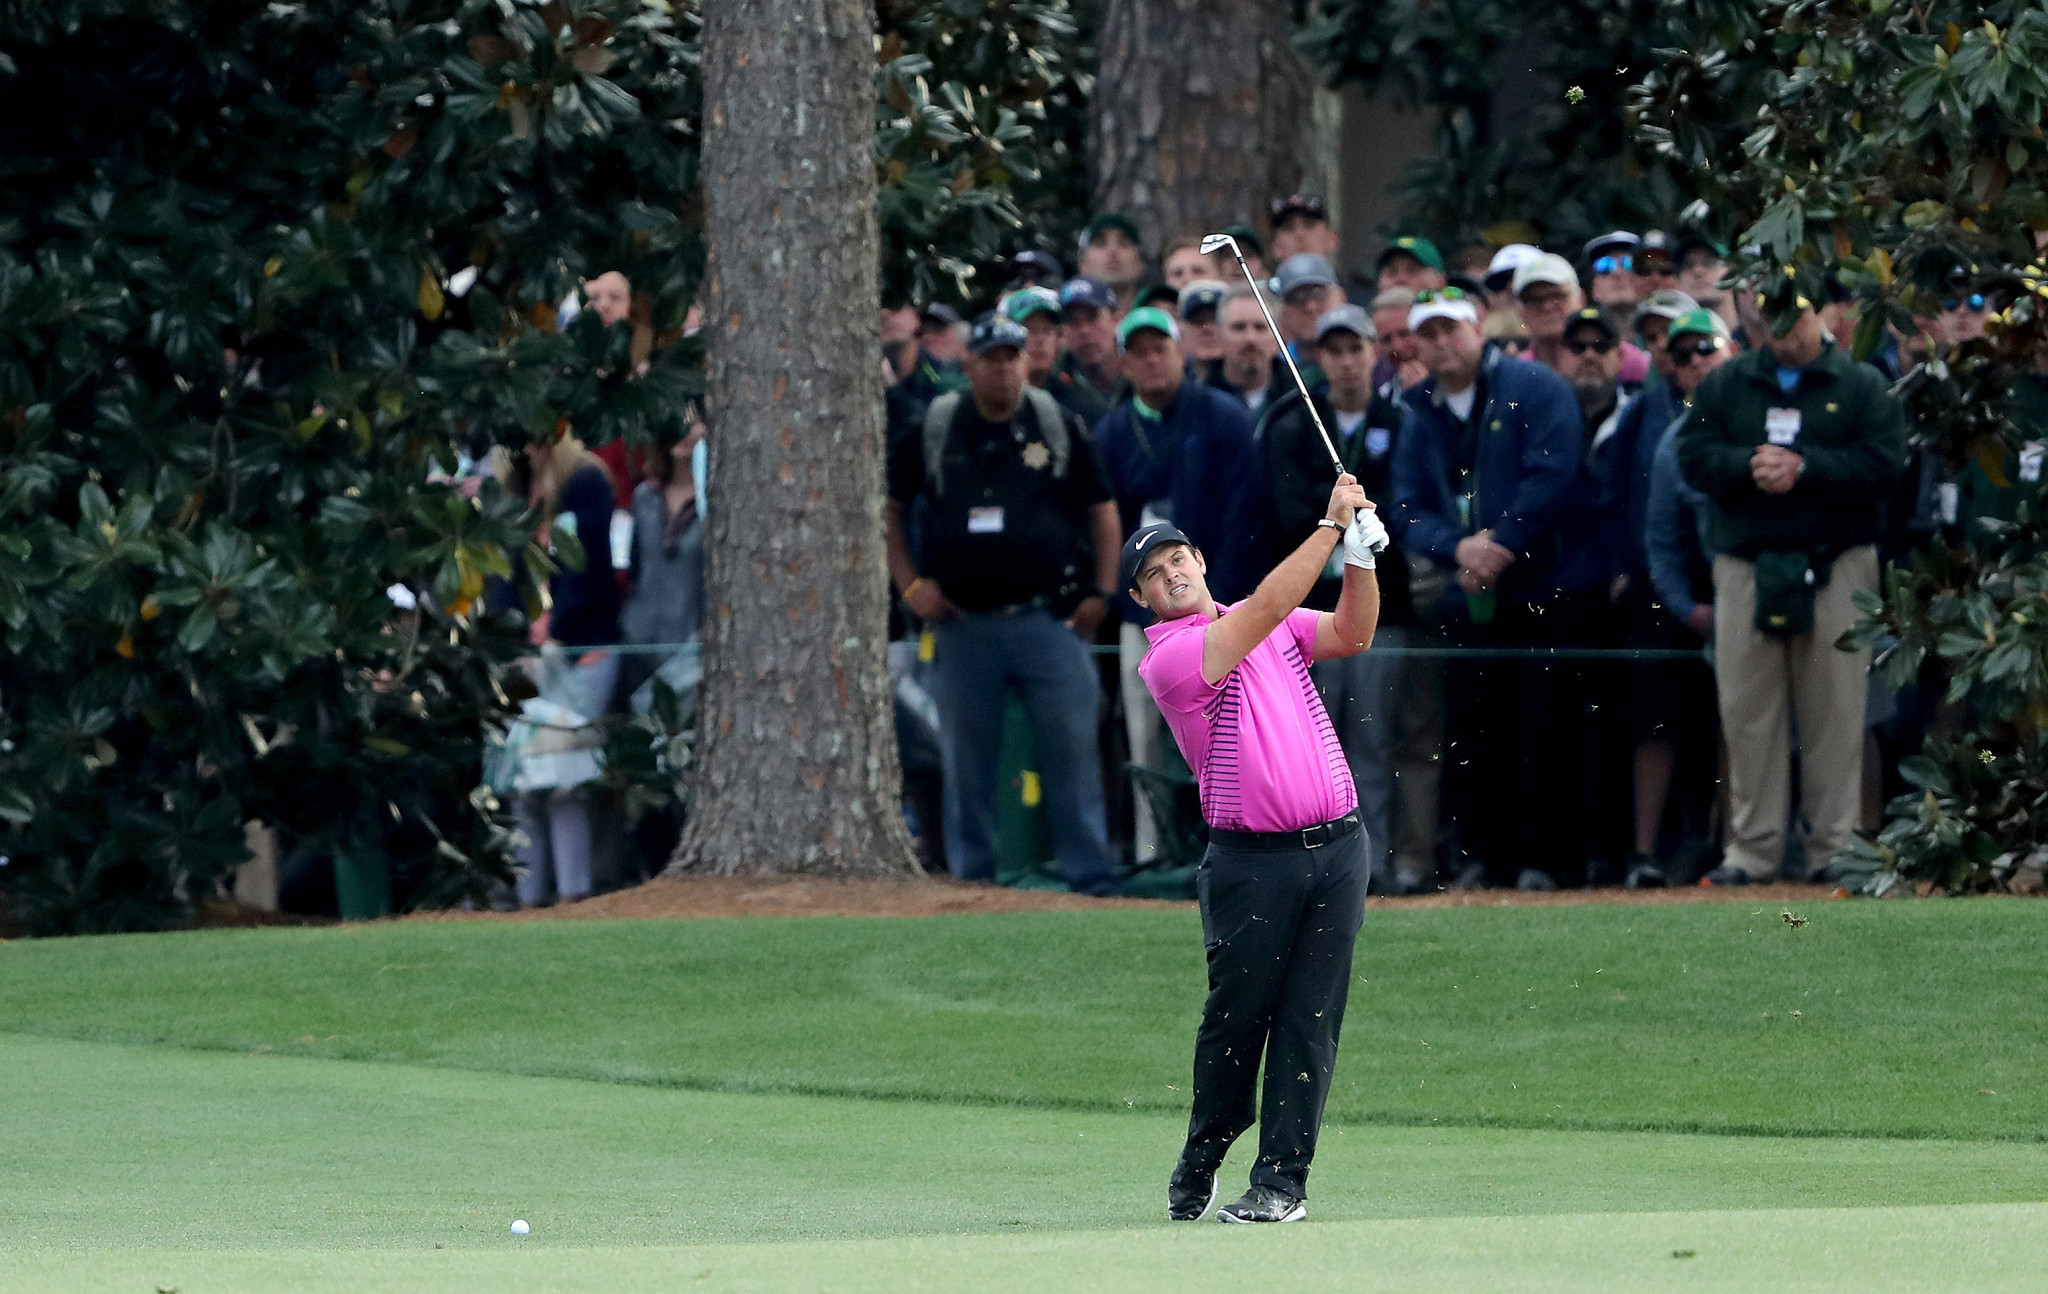 Patrick Reed claimed a one-shot victory at The Masters ©Getty Images